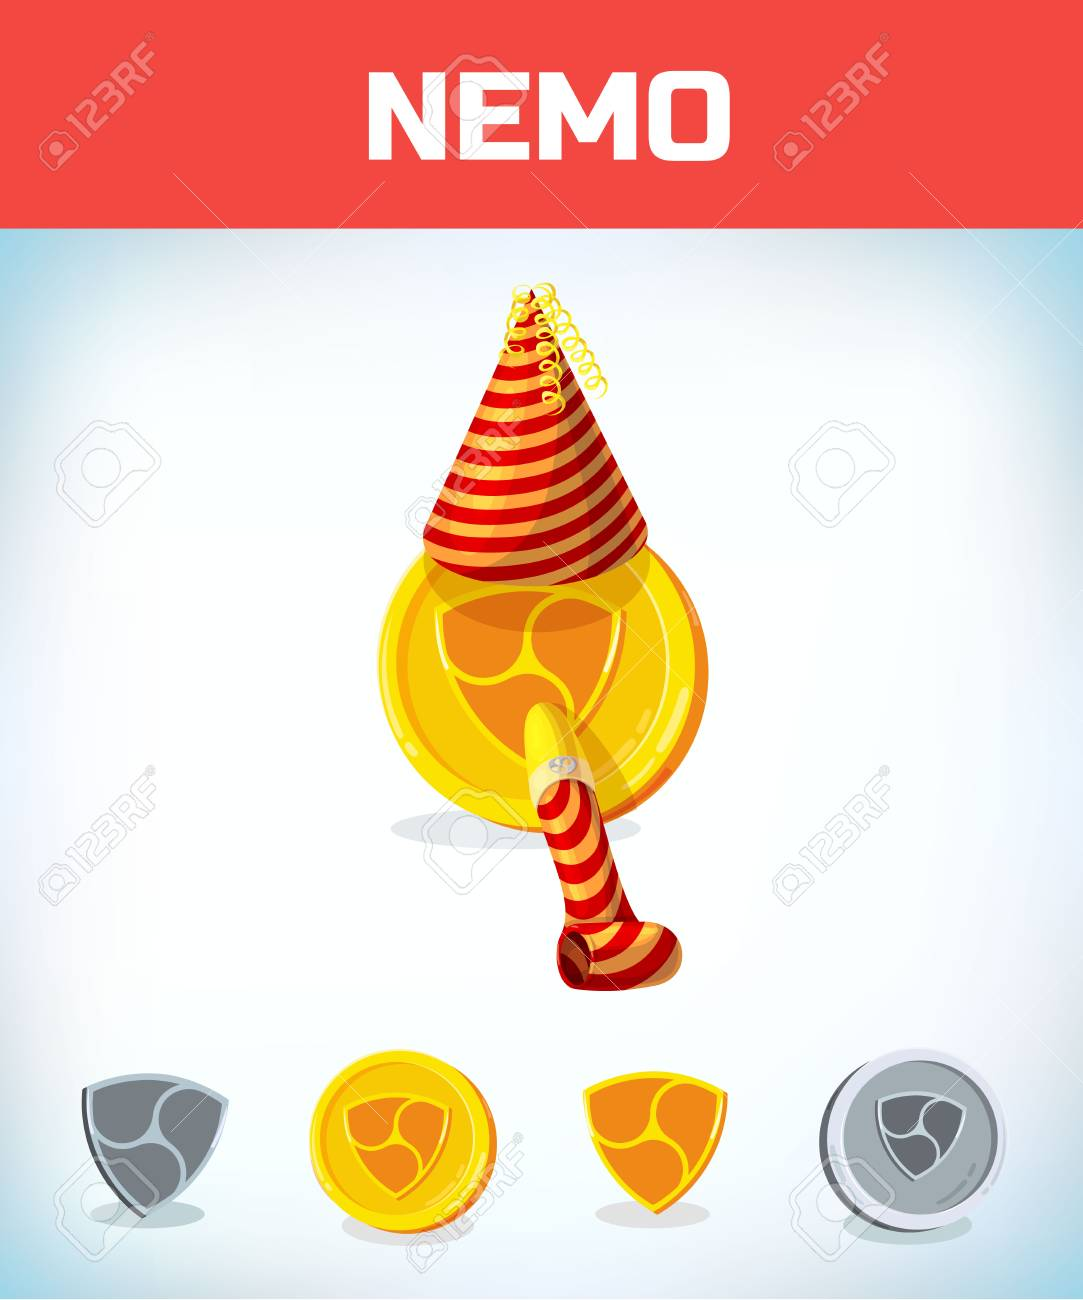 Nemo In Birthday Hat And Pipe Digital Currency Crypto Money